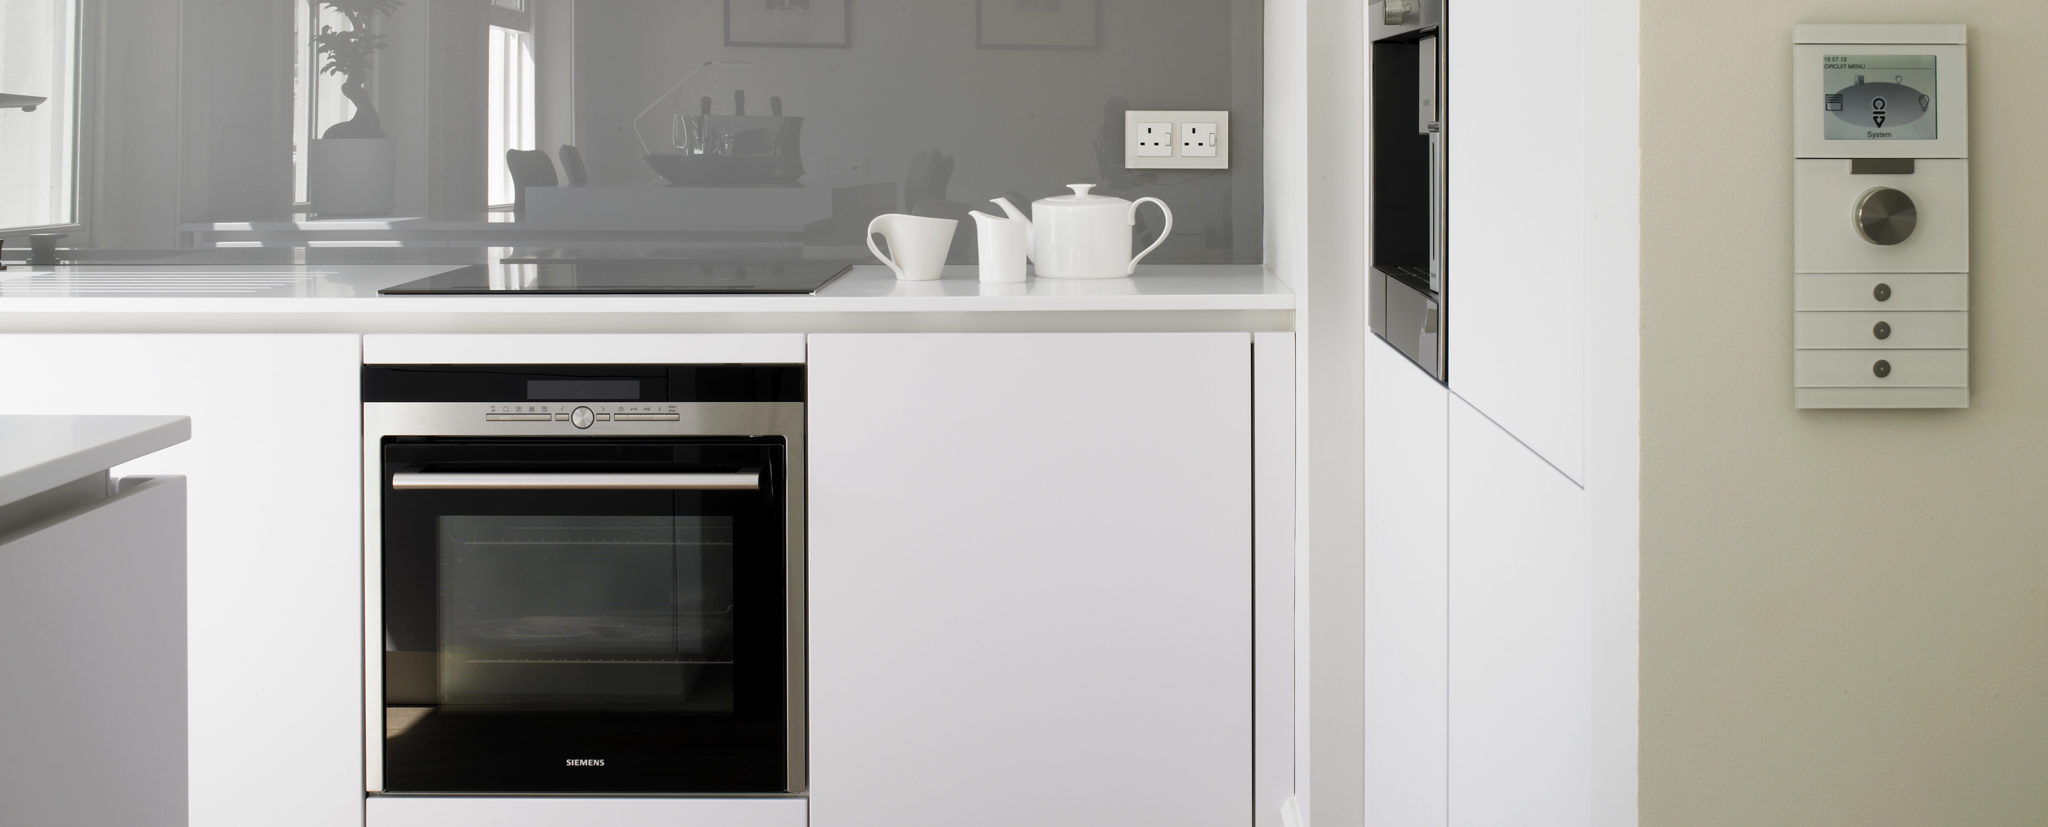 Compact white kitchen design Kensington apartment.